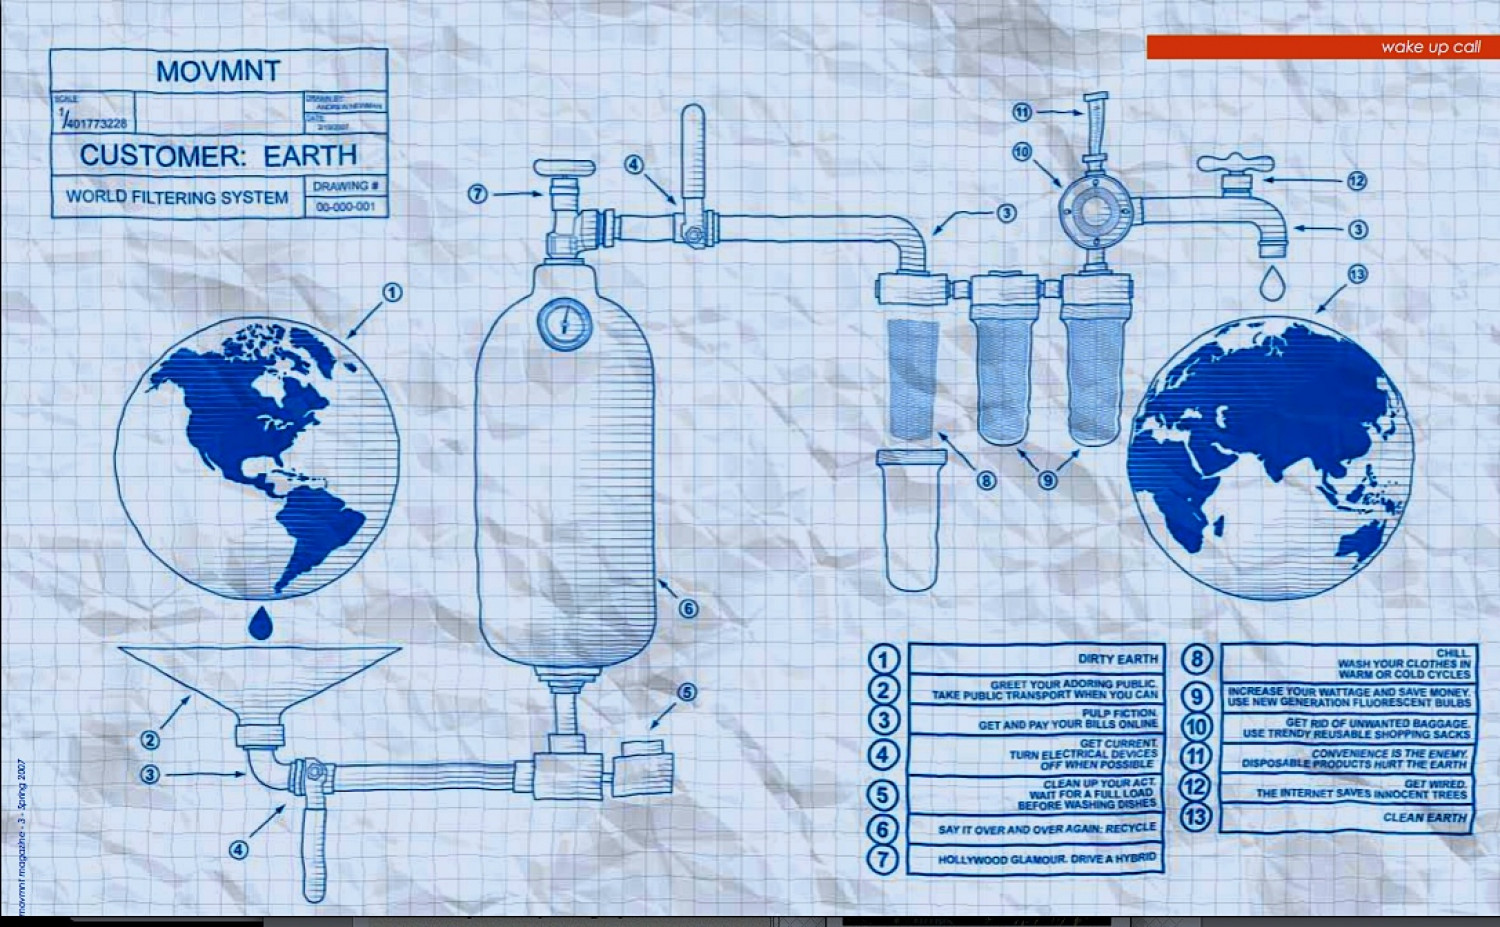 World Filtering System Infographic